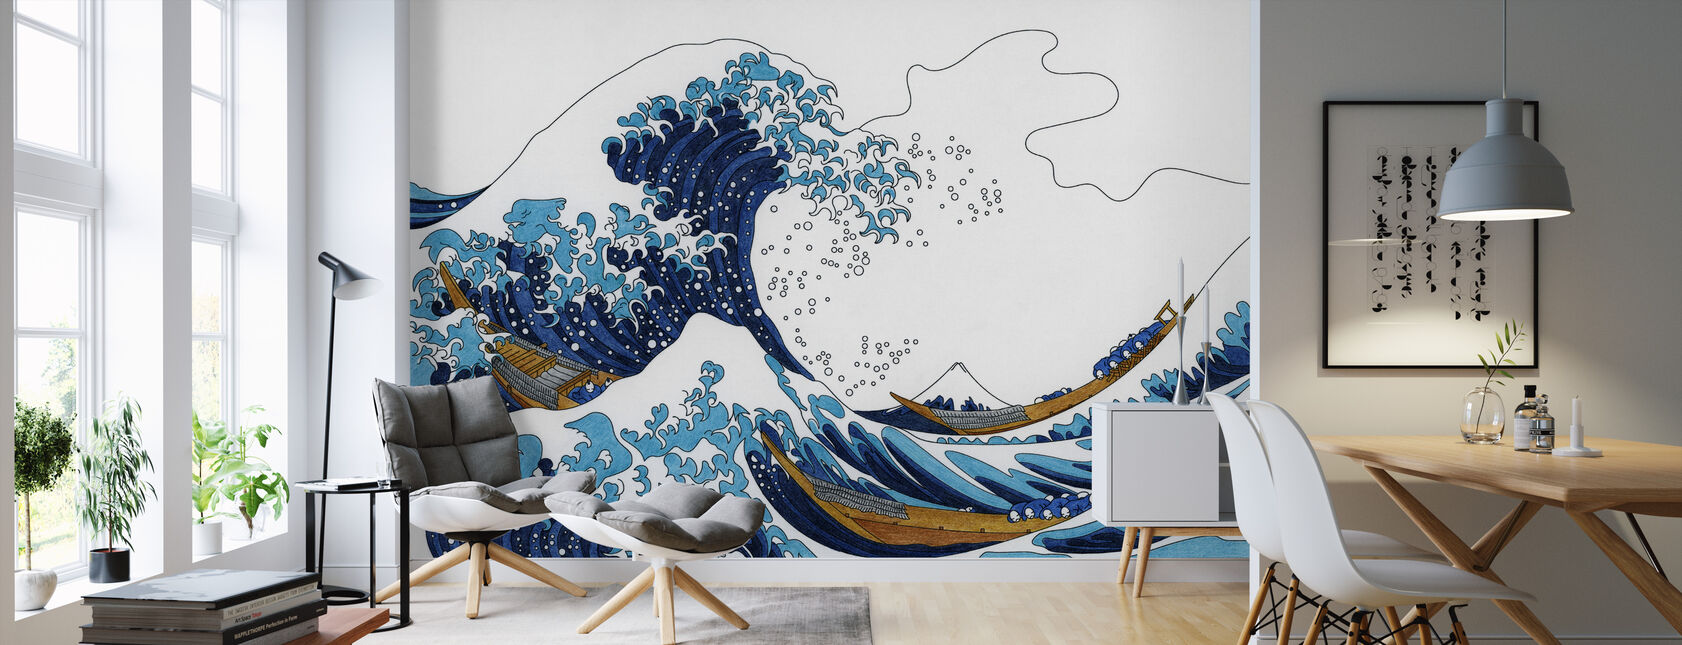 Great Wave of Kanagawa - Wallpaper - Living Room